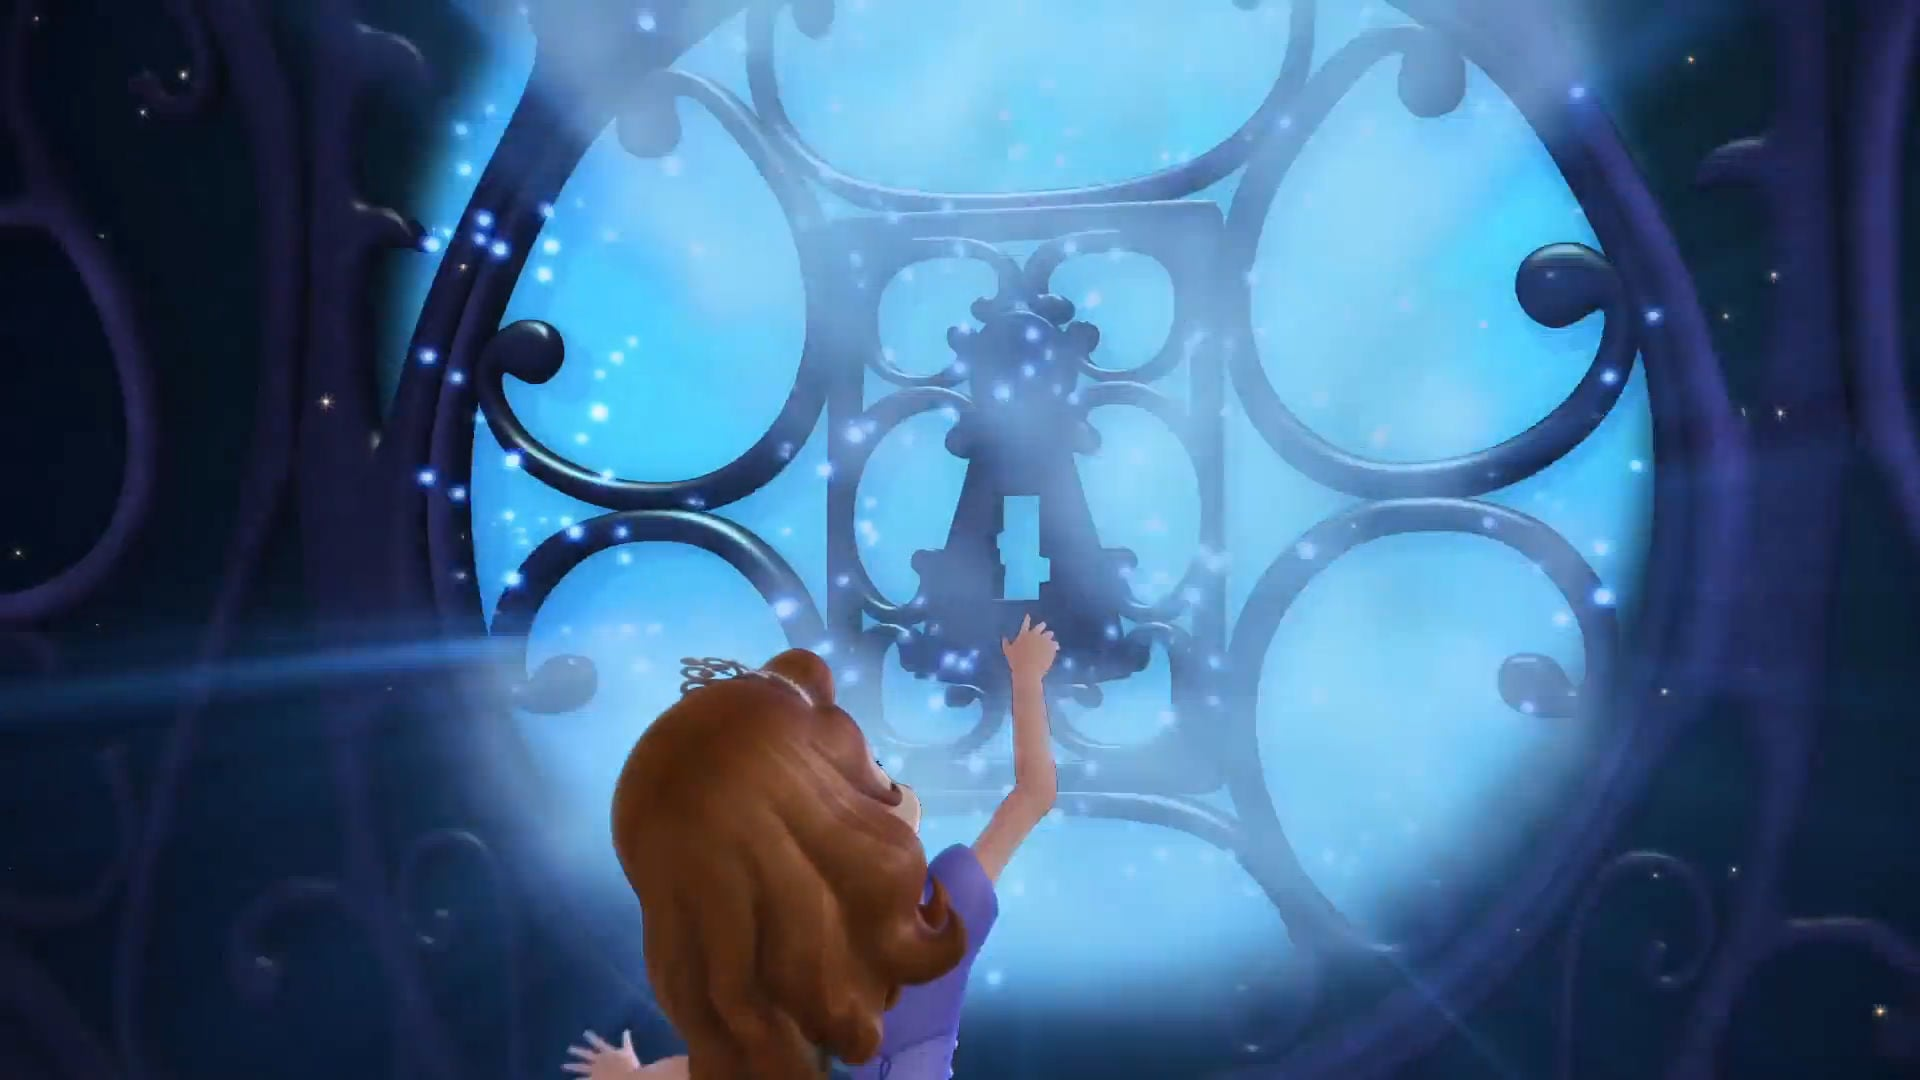 Sofia the First - New Season